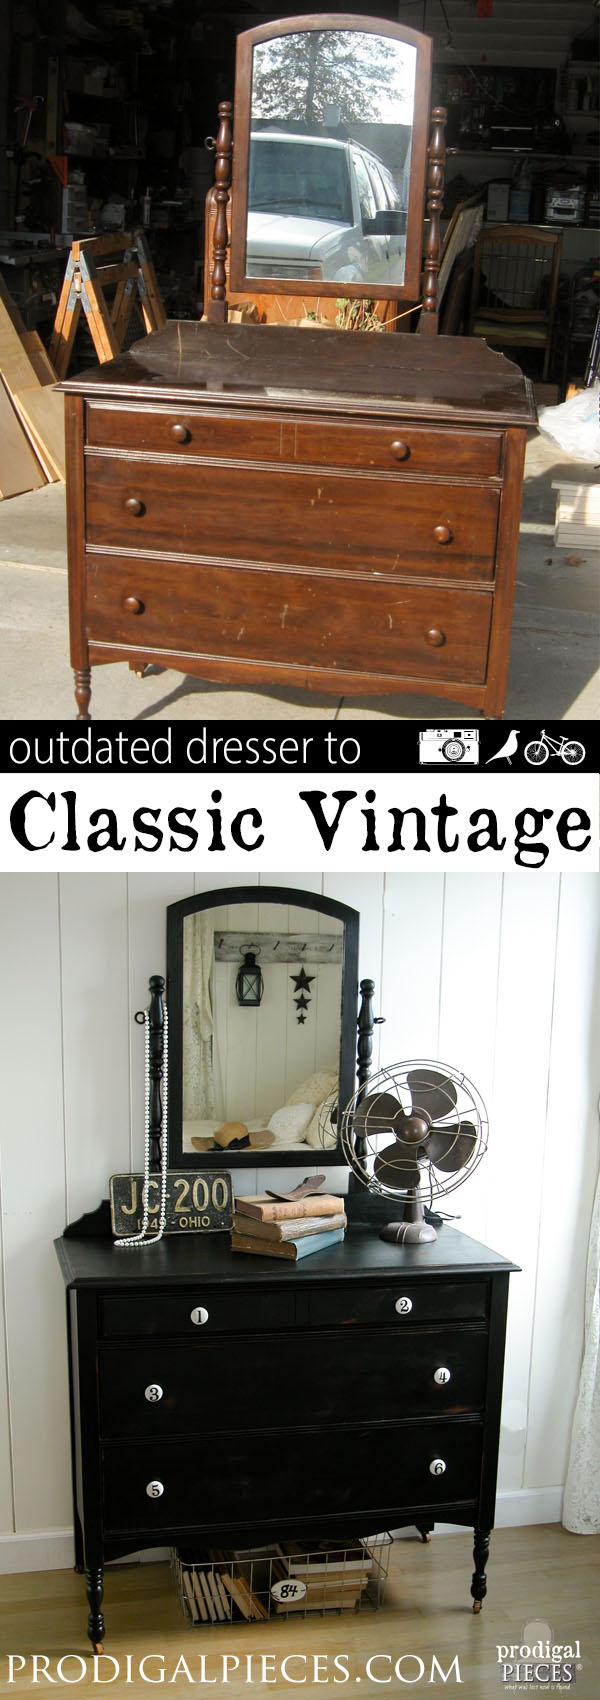 An outdated dresser just needs a little TLC and new look to get it back to the classic vintage style by Prodigal Pieces | prodigalpieces.com